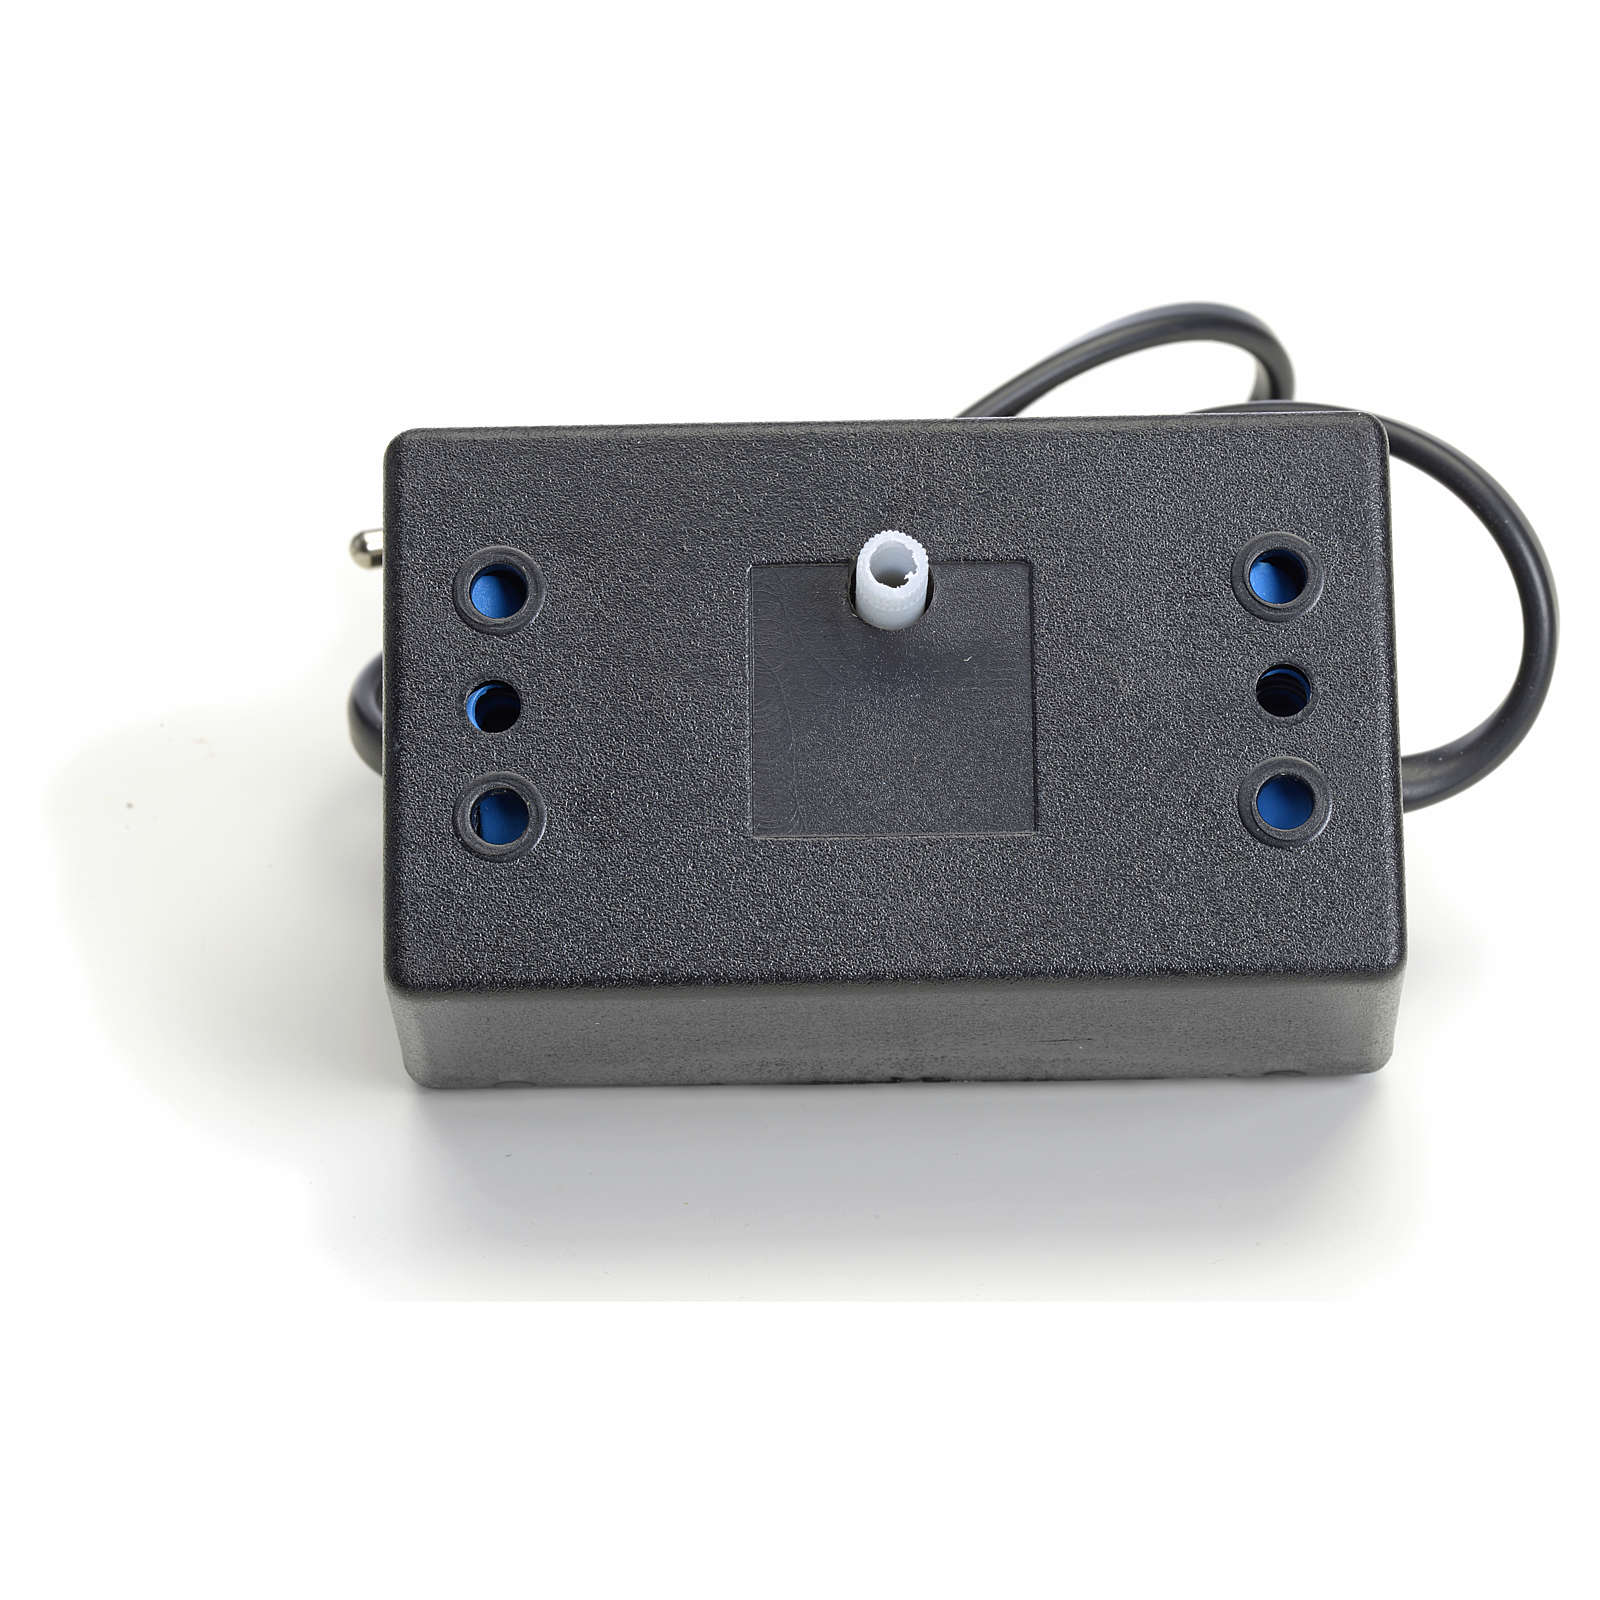 Control unit, flickering effect for stars and fire 4